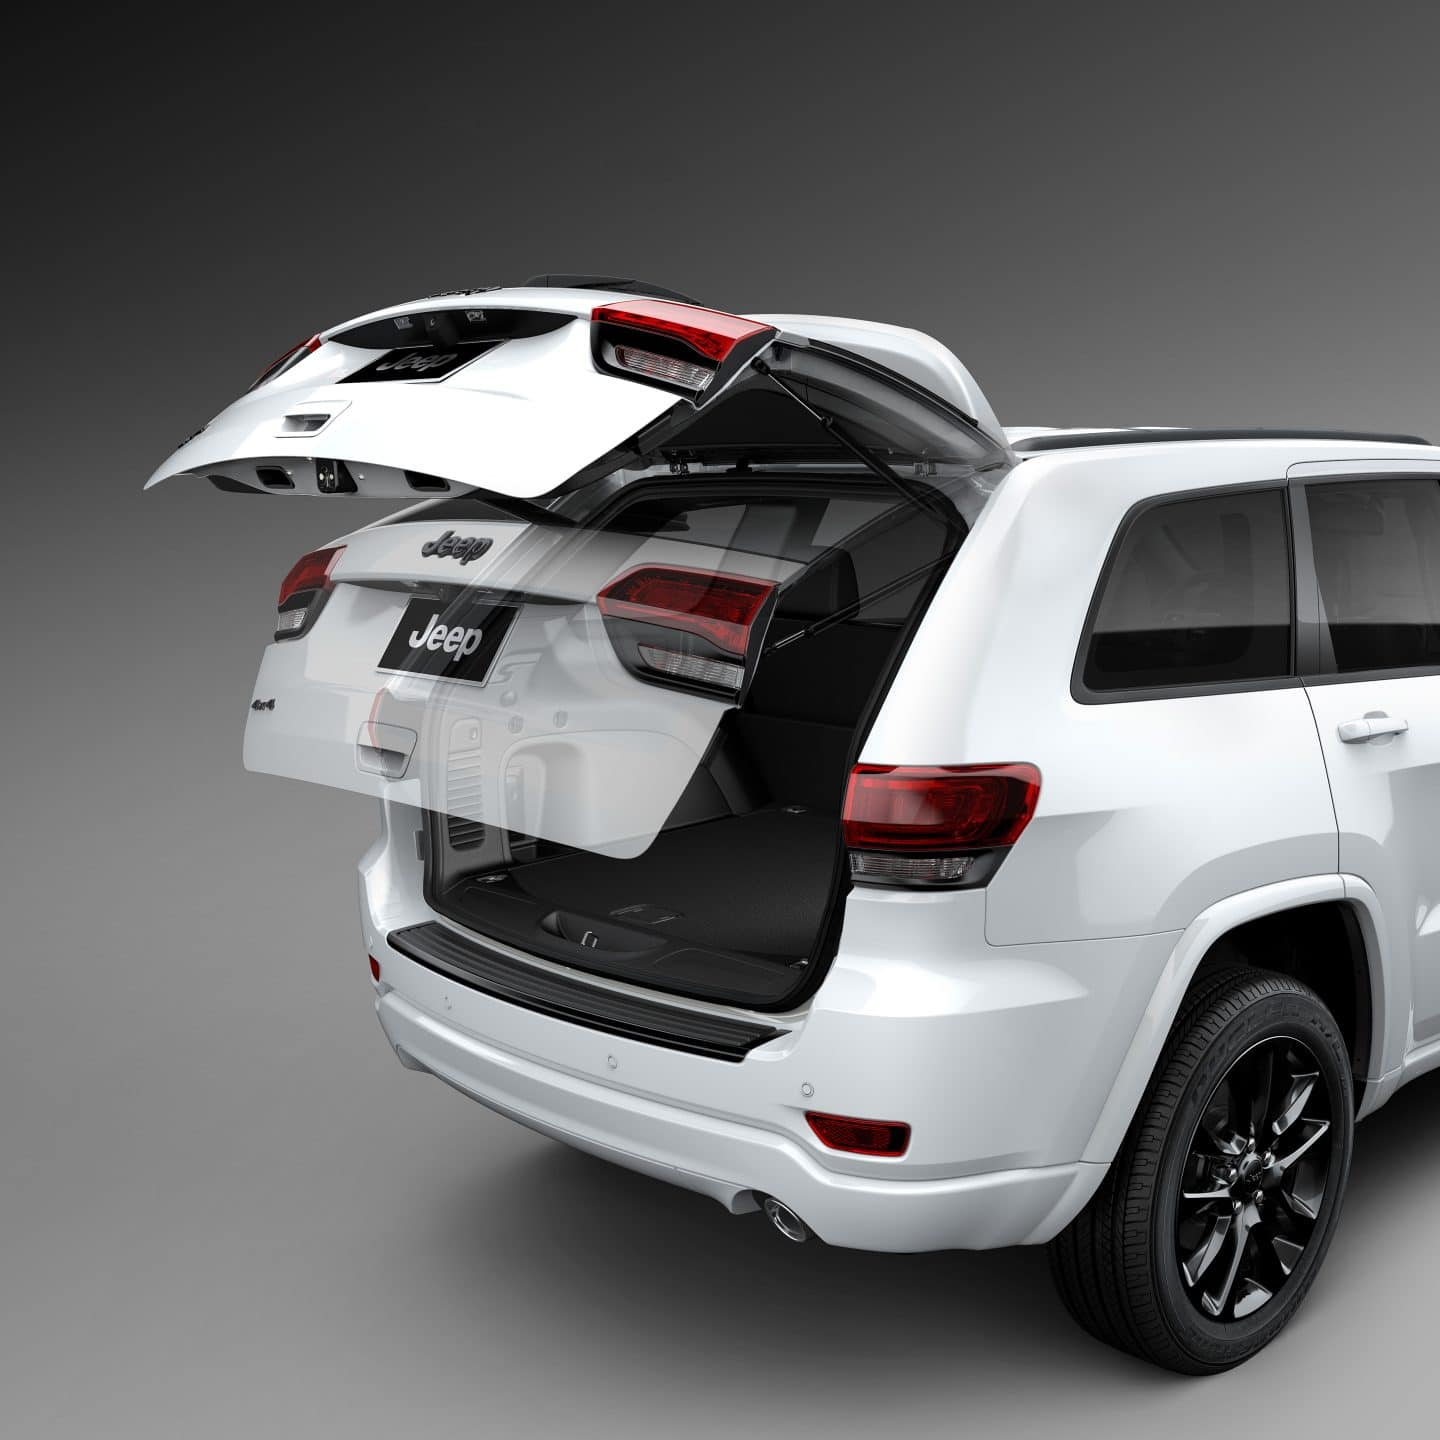 2017 jeep grand cherokee altitude - limited edition